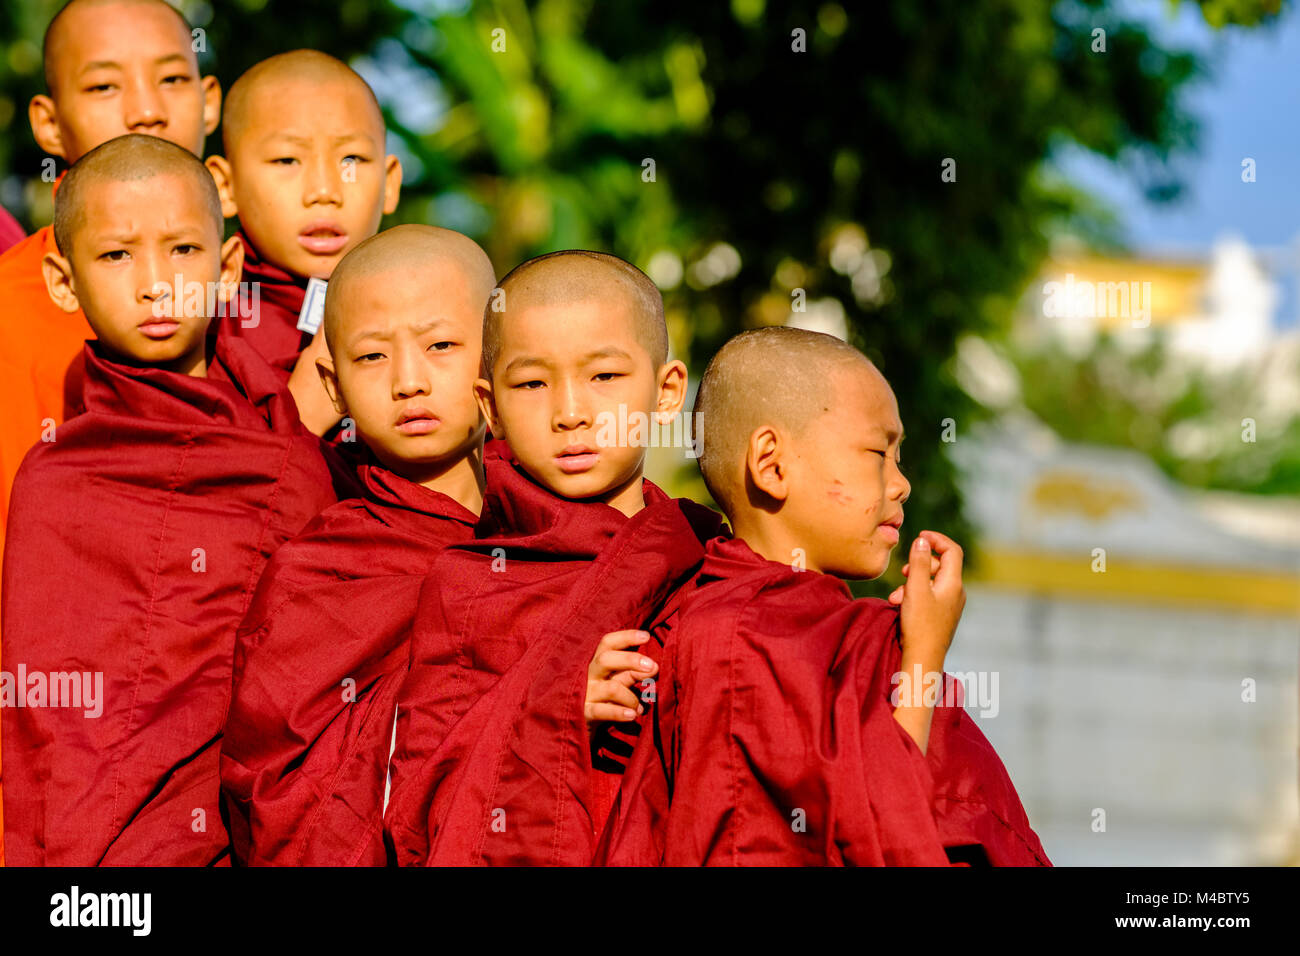 Portraits of young buddhist monks queuing in a long row to receive donations in a monastery - Stock Image